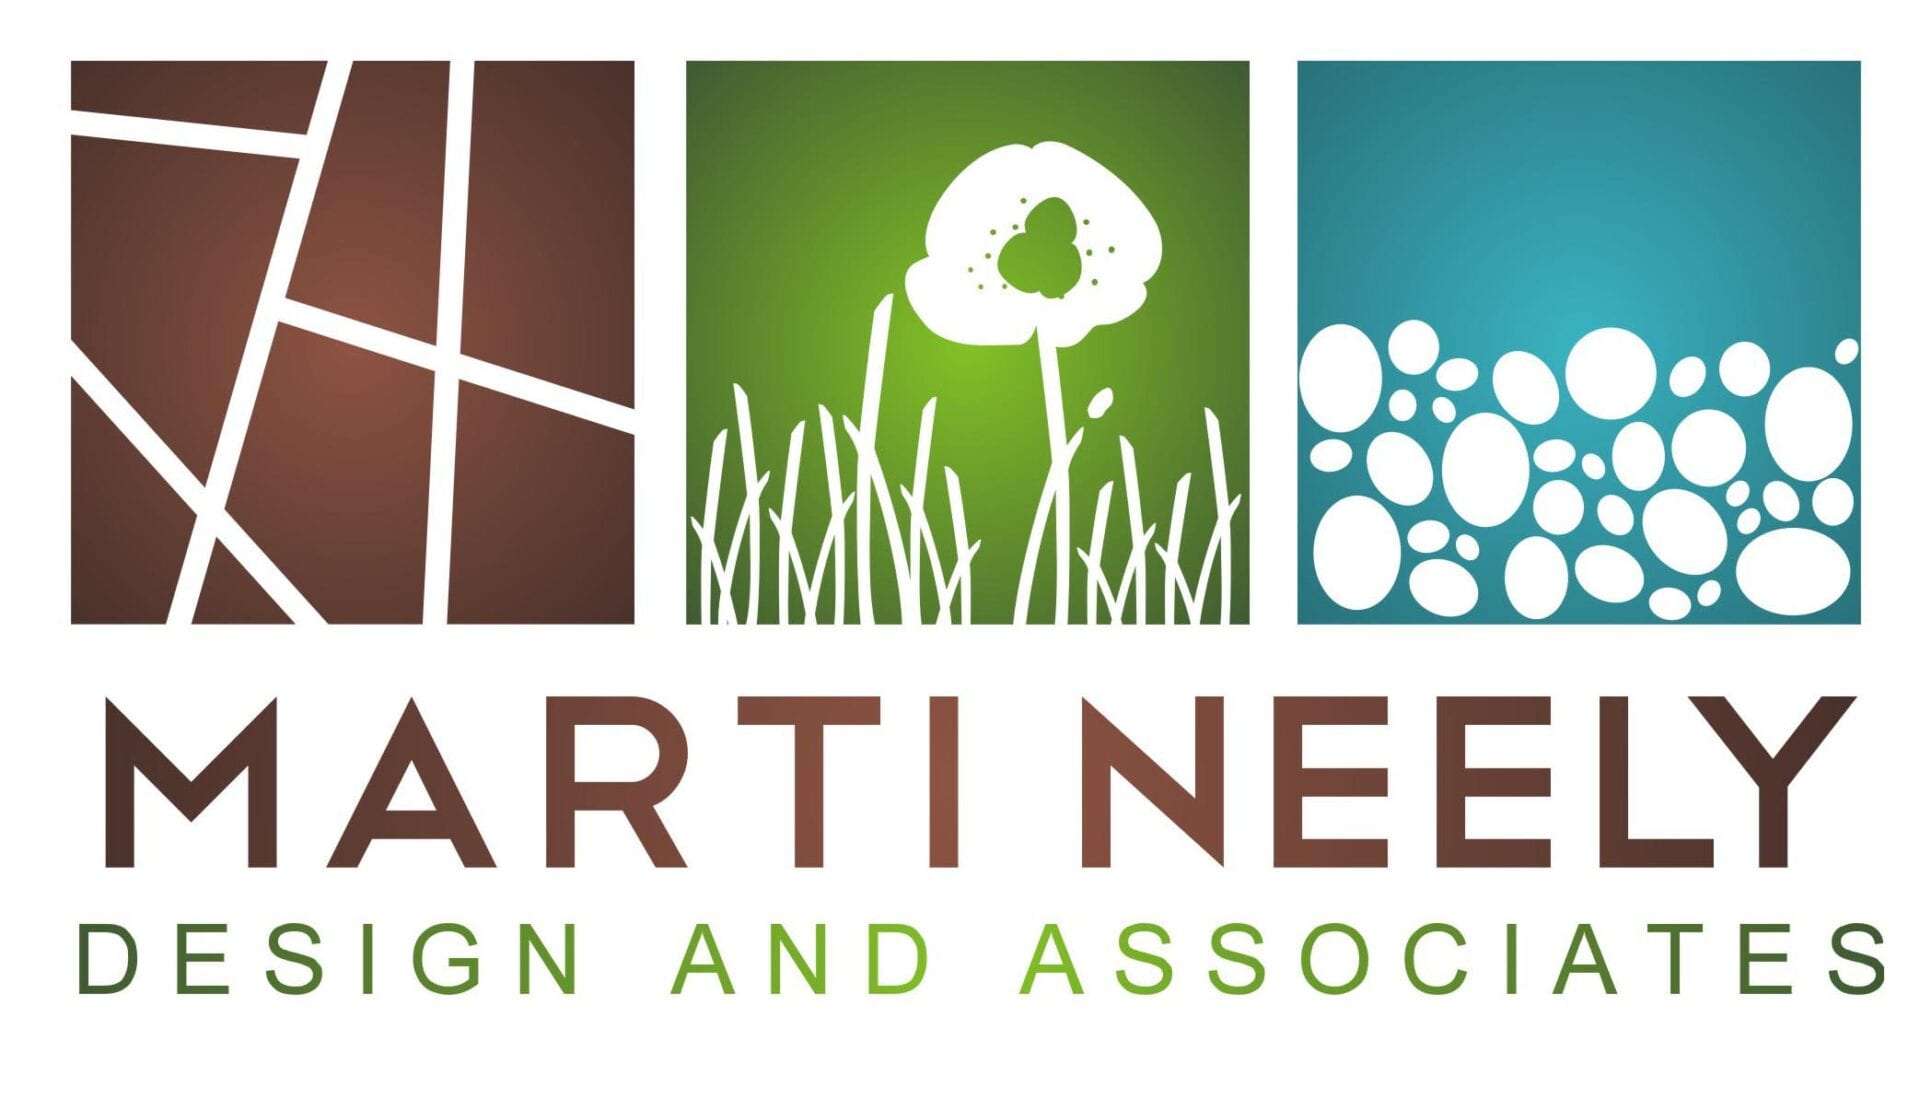 Marti Neely and Associates